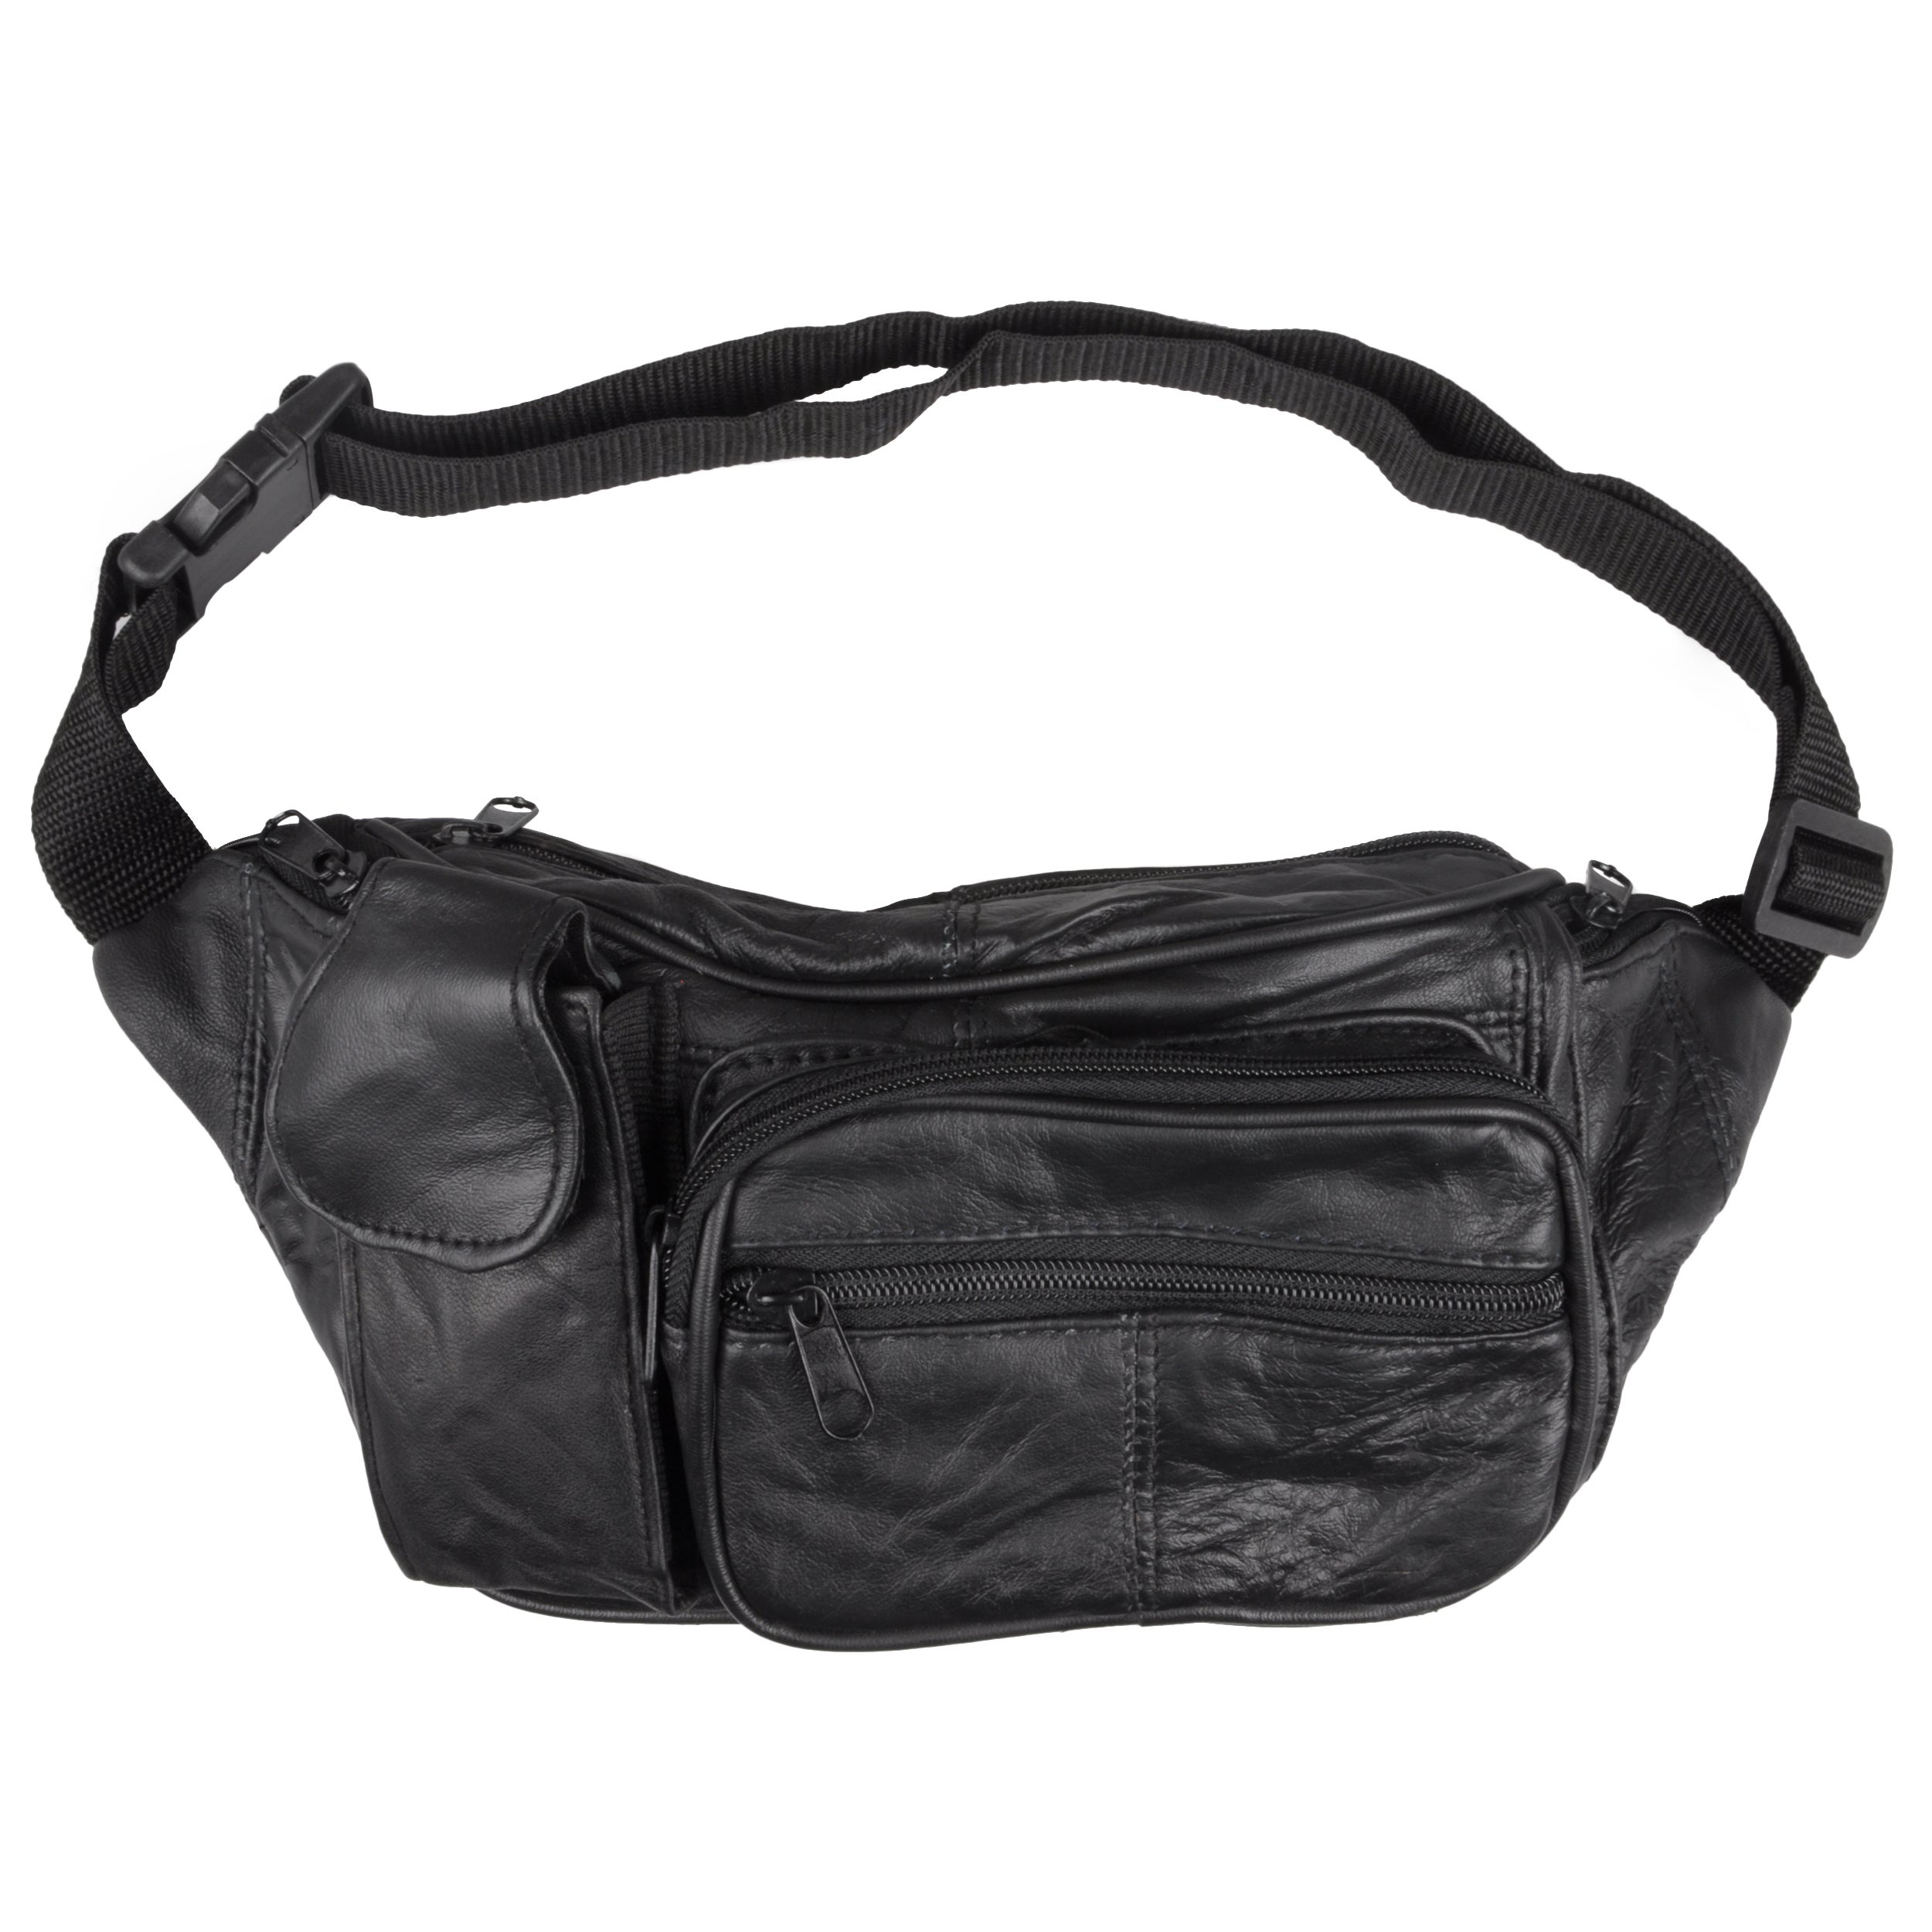 Journee Collection Women's Black Leather Fanny Pack at Sears.com